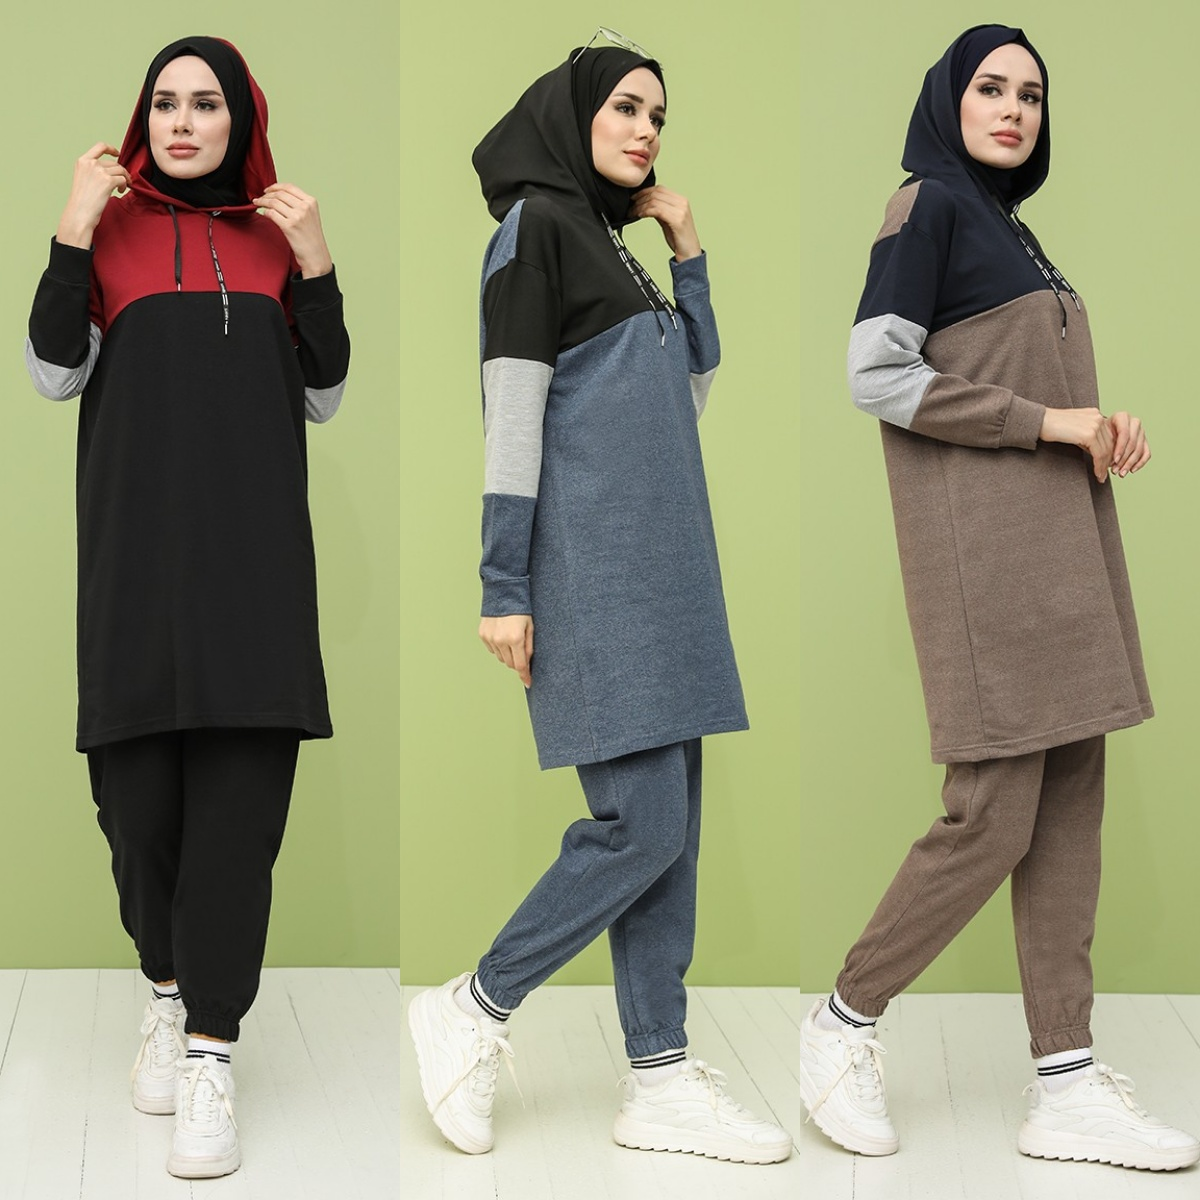 Two Piece Sets Women Hooded Tracksuit Long Hoodie Top + Pants Jogging Sporty Matching Suits 2021 Muslim Sportswear Casual Female